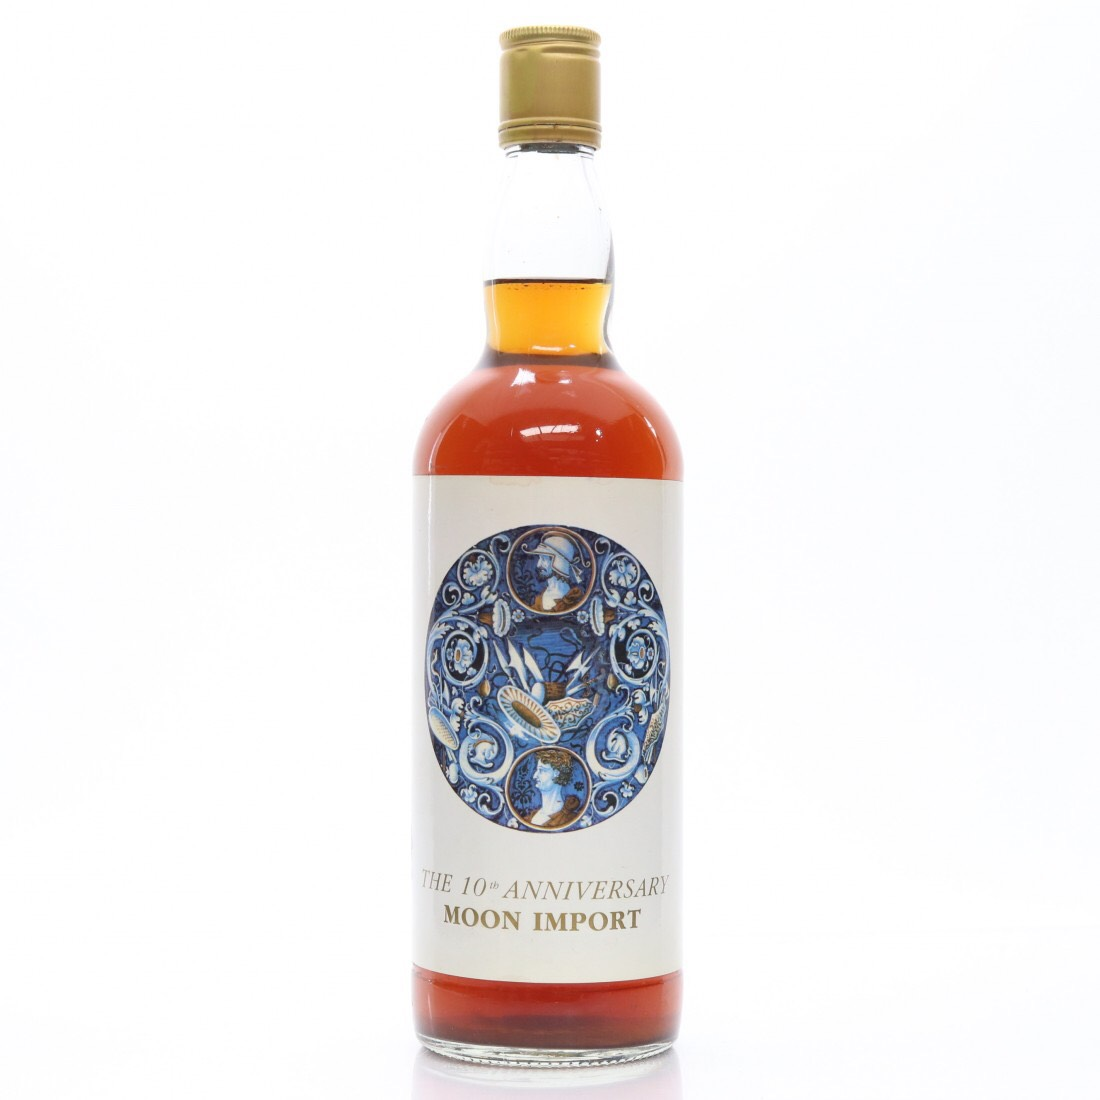 Bottle image of 10th Anniversary